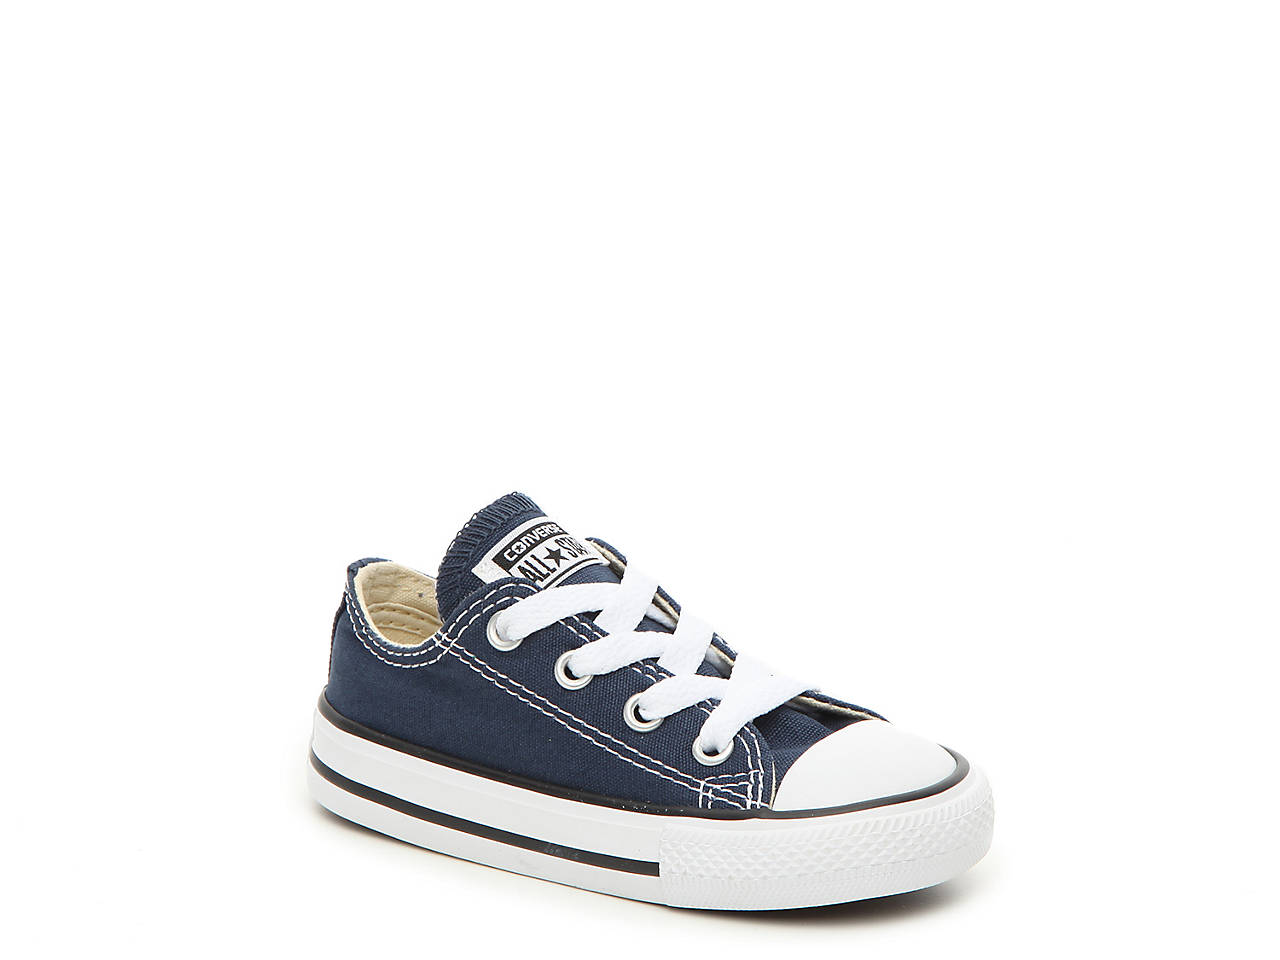 fc5d566f2c0 Converse Chuck Taylor All Star Infant   Toddler Sneaker Kids Shoes